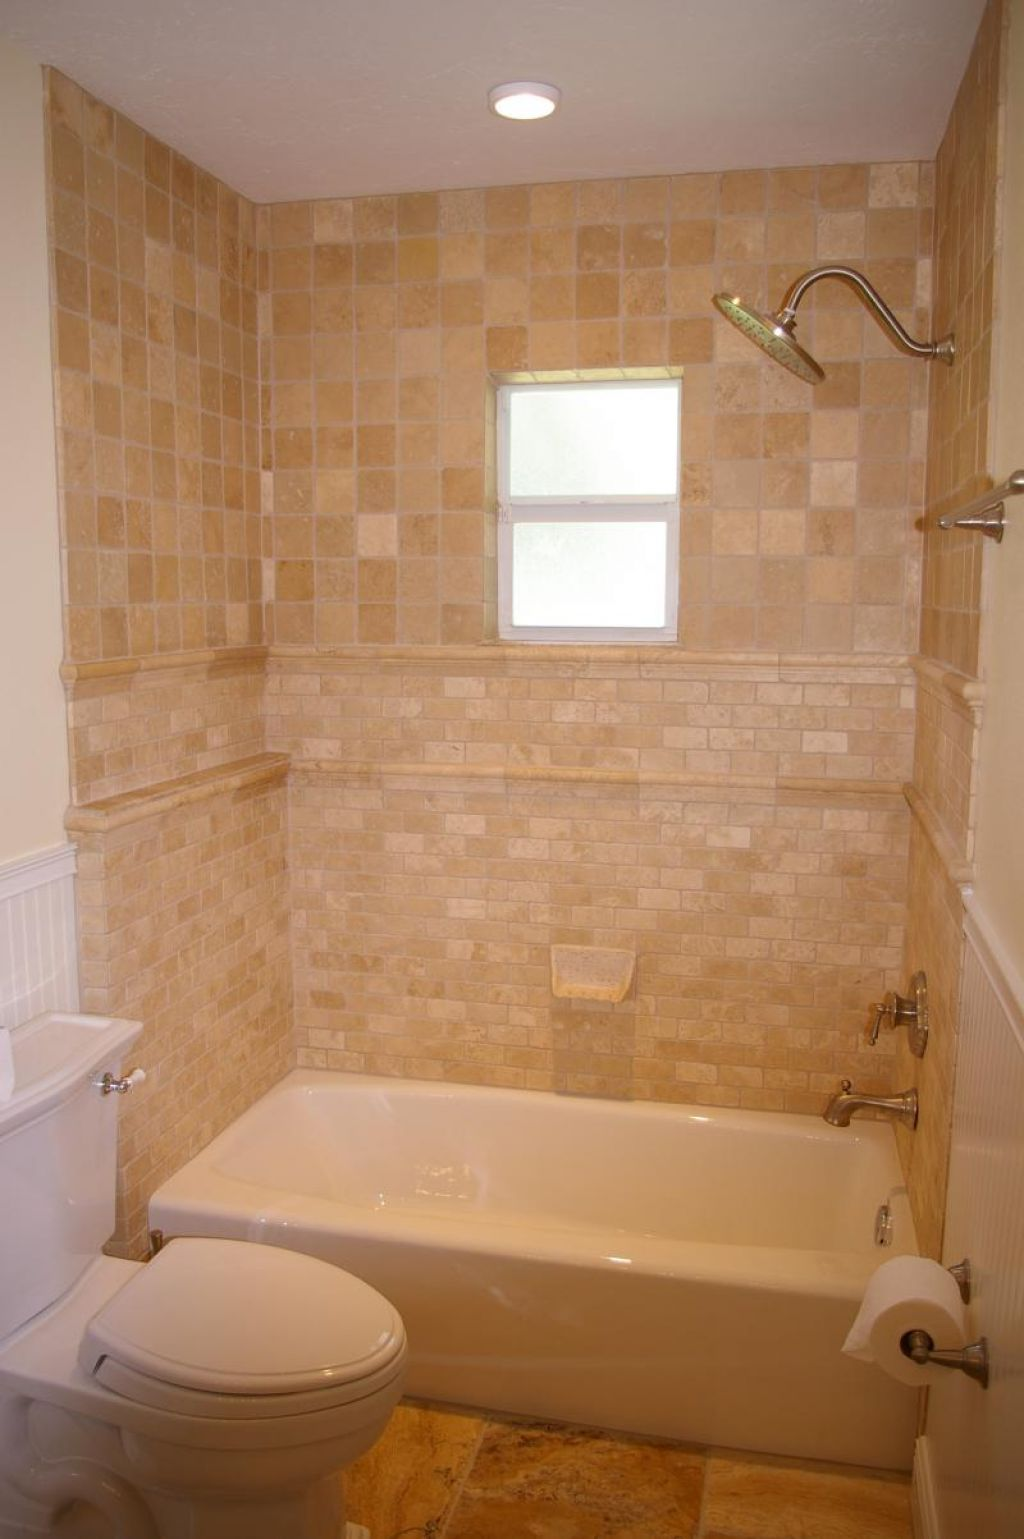 30 shower tile ideas on a budget for Bathroom designs low budget